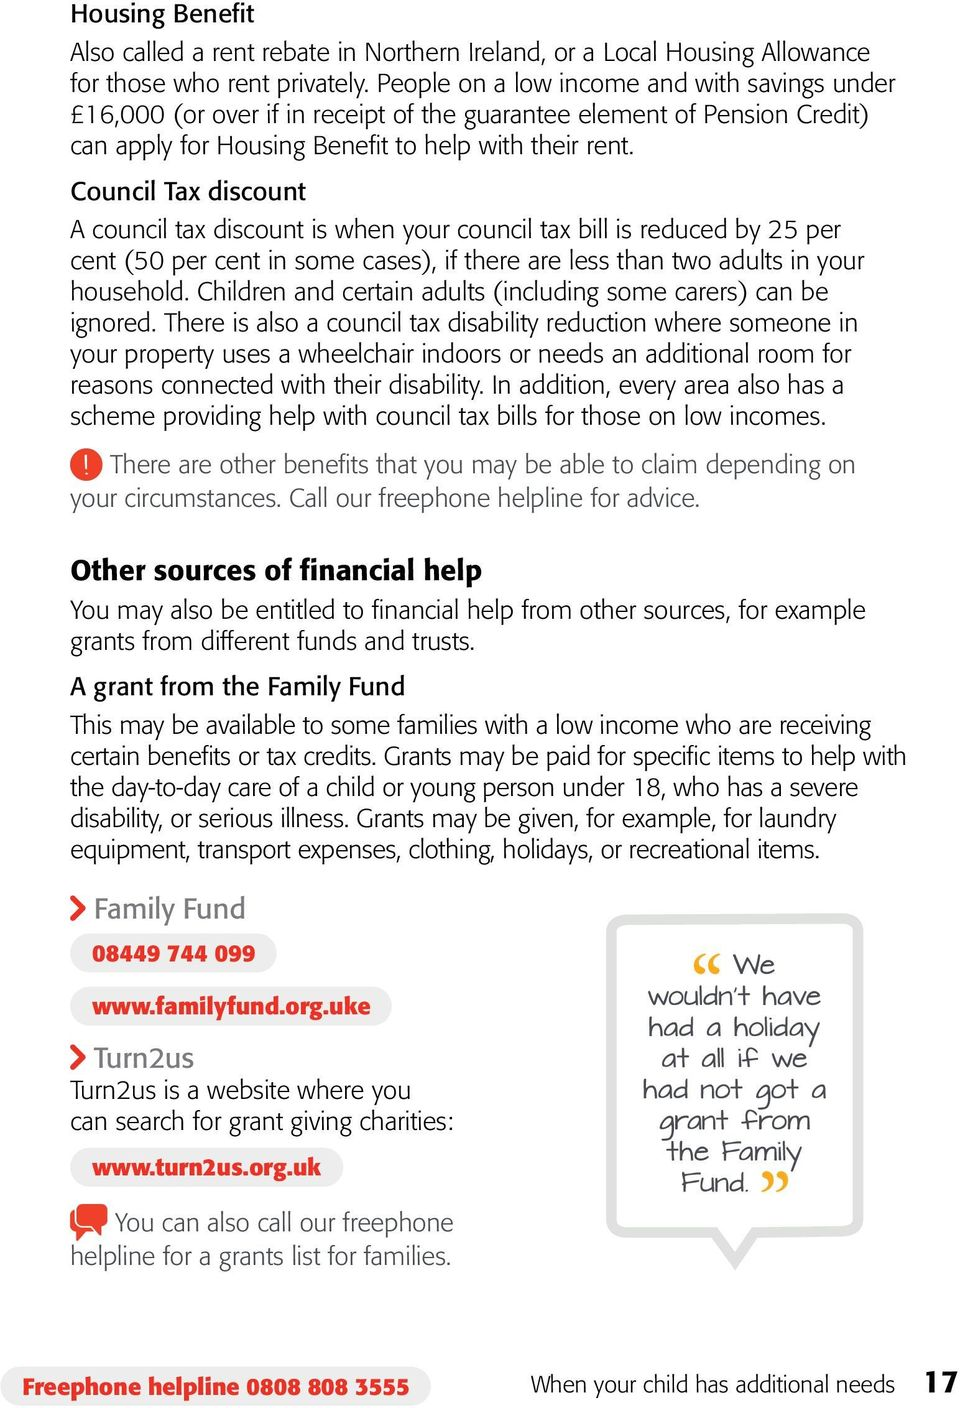 Council Tax discount A council tax discount is when your council tax bill is reduced by 25 per cent (50 per cent in some cases), if there are less than two adults in your household.